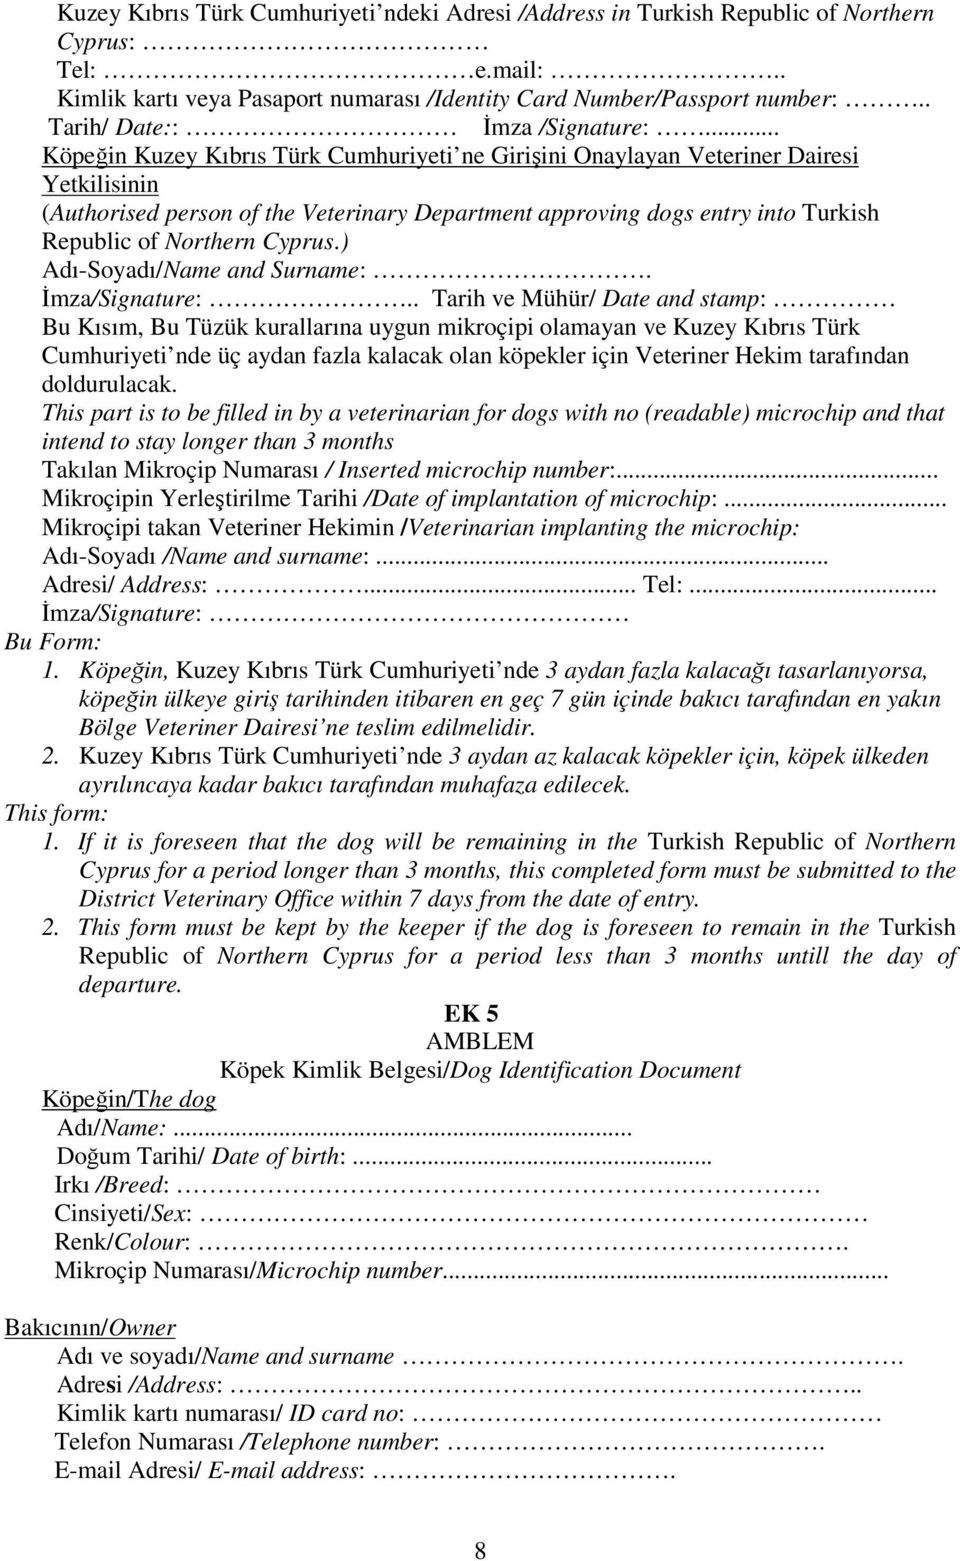 .. Köpeğin Kuzey Kıbrıs Türk Cumhuriyeti ne Girişini Onaylayan Veteriner Dairesi Yetkilisinin (Authorised person of the Veterinary Department approving dogs entry into Turkish Republic of Northern